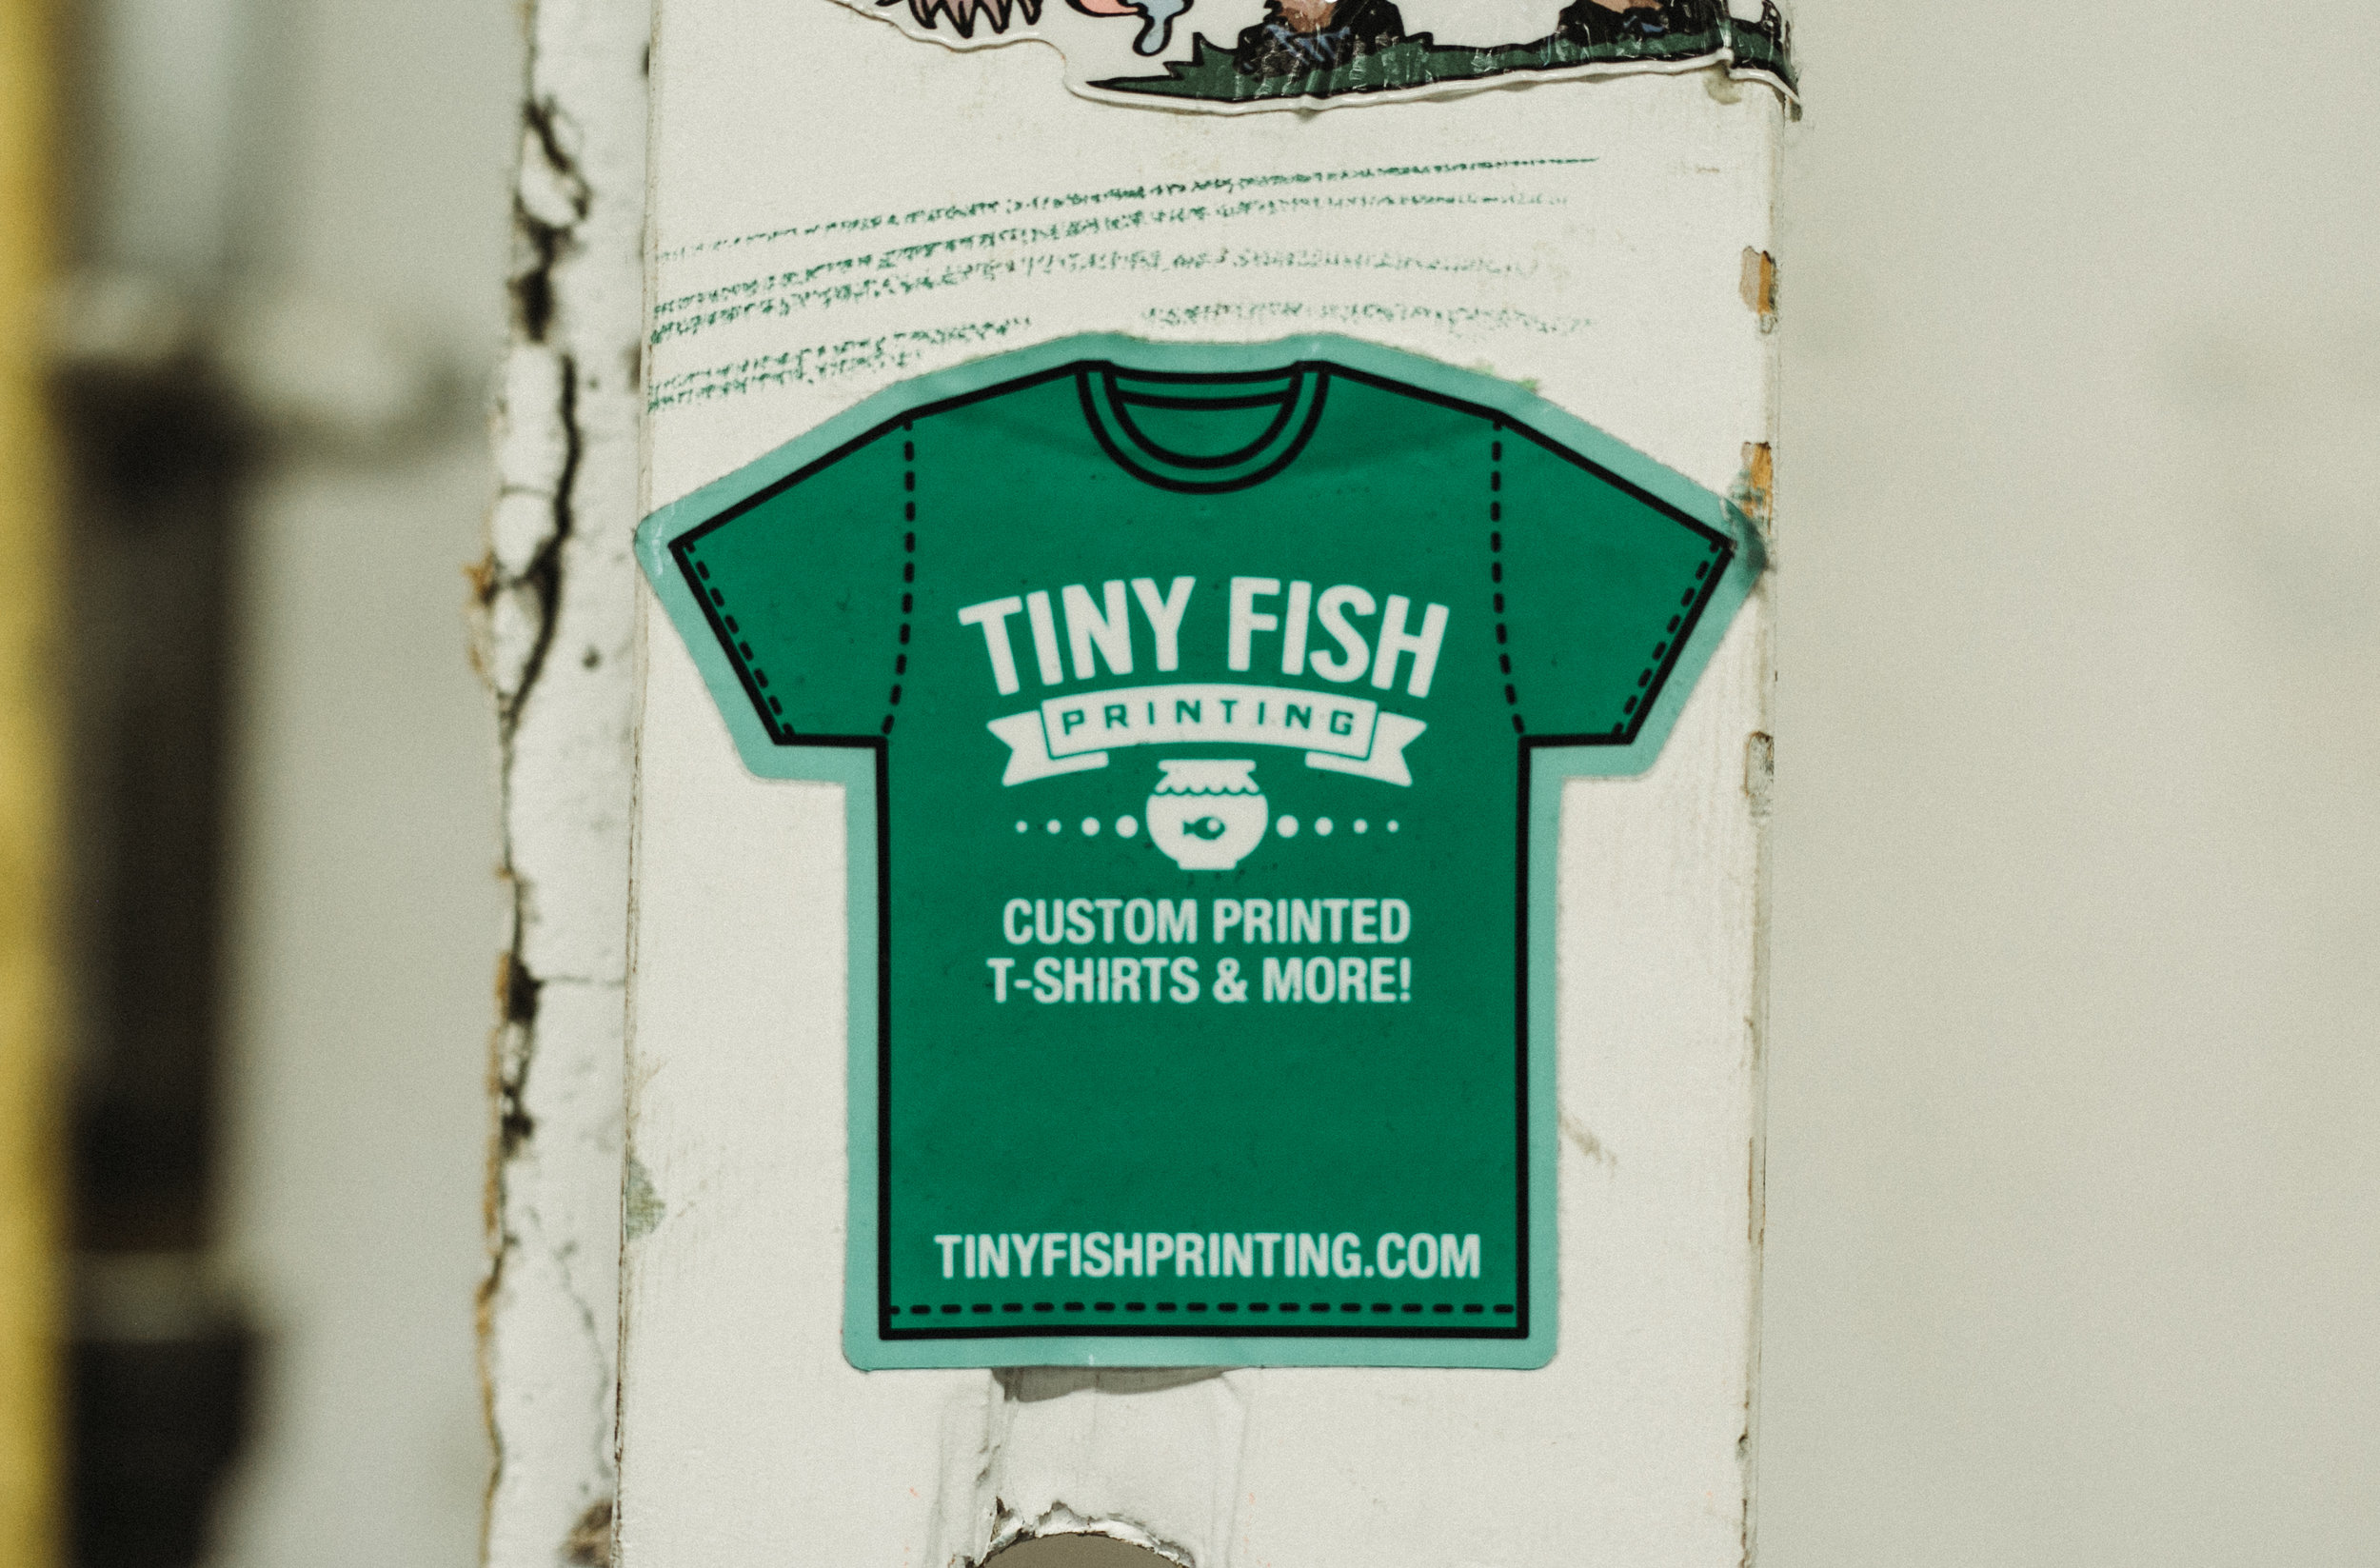 tinyfish (26 of 52).jpg